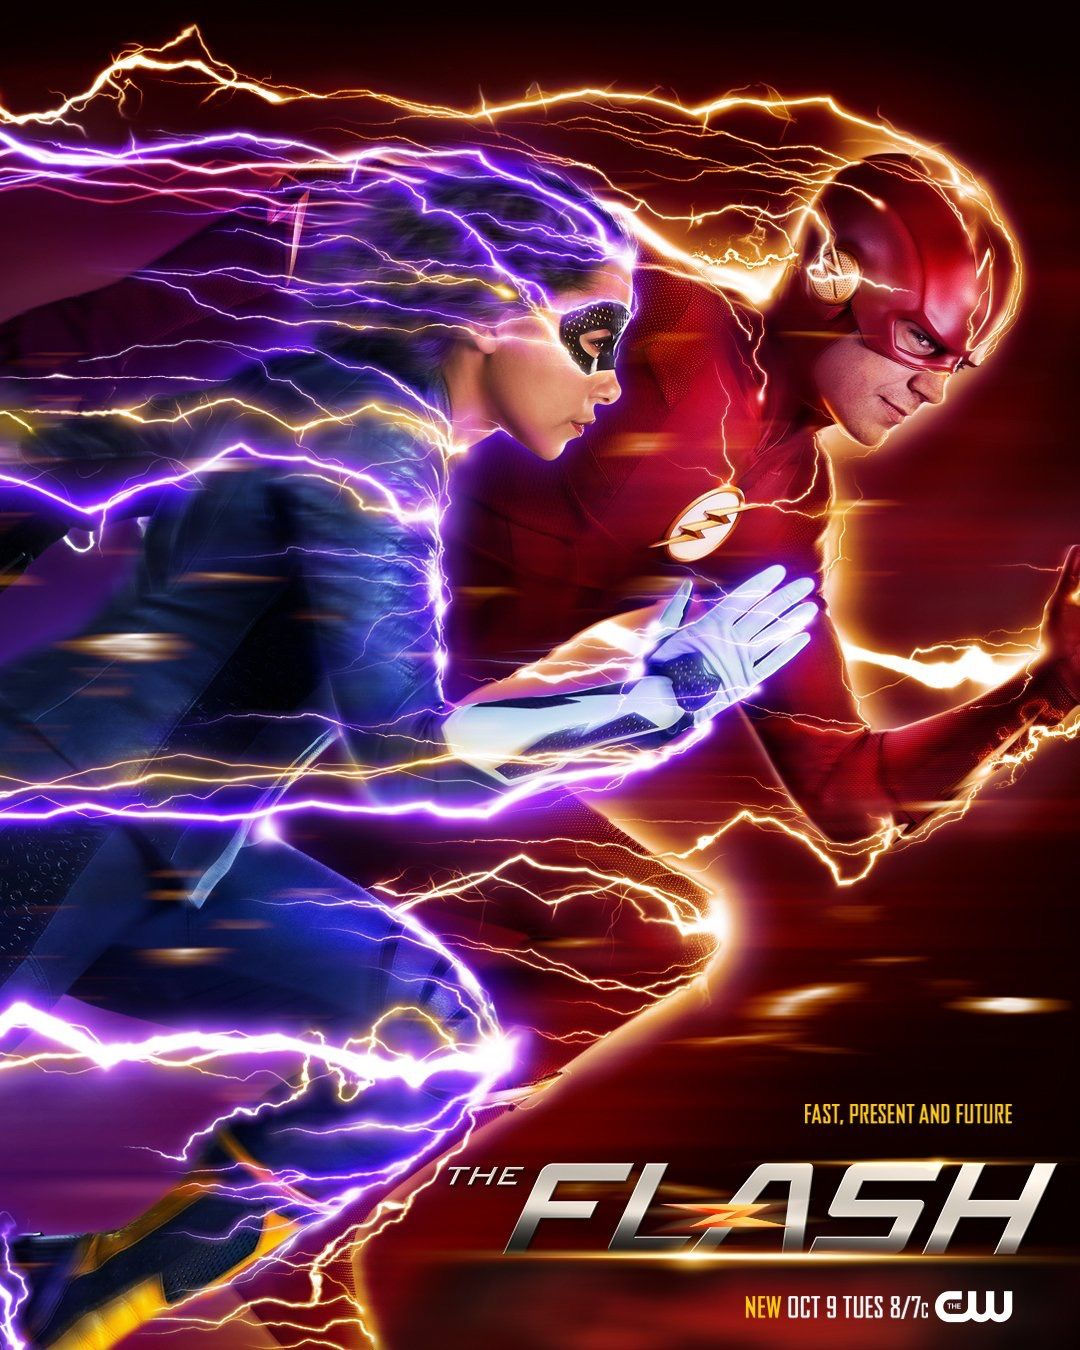 Pin By Jerry Mosley On The Flash The Flash Season The Flash Poster Flash Tv Series